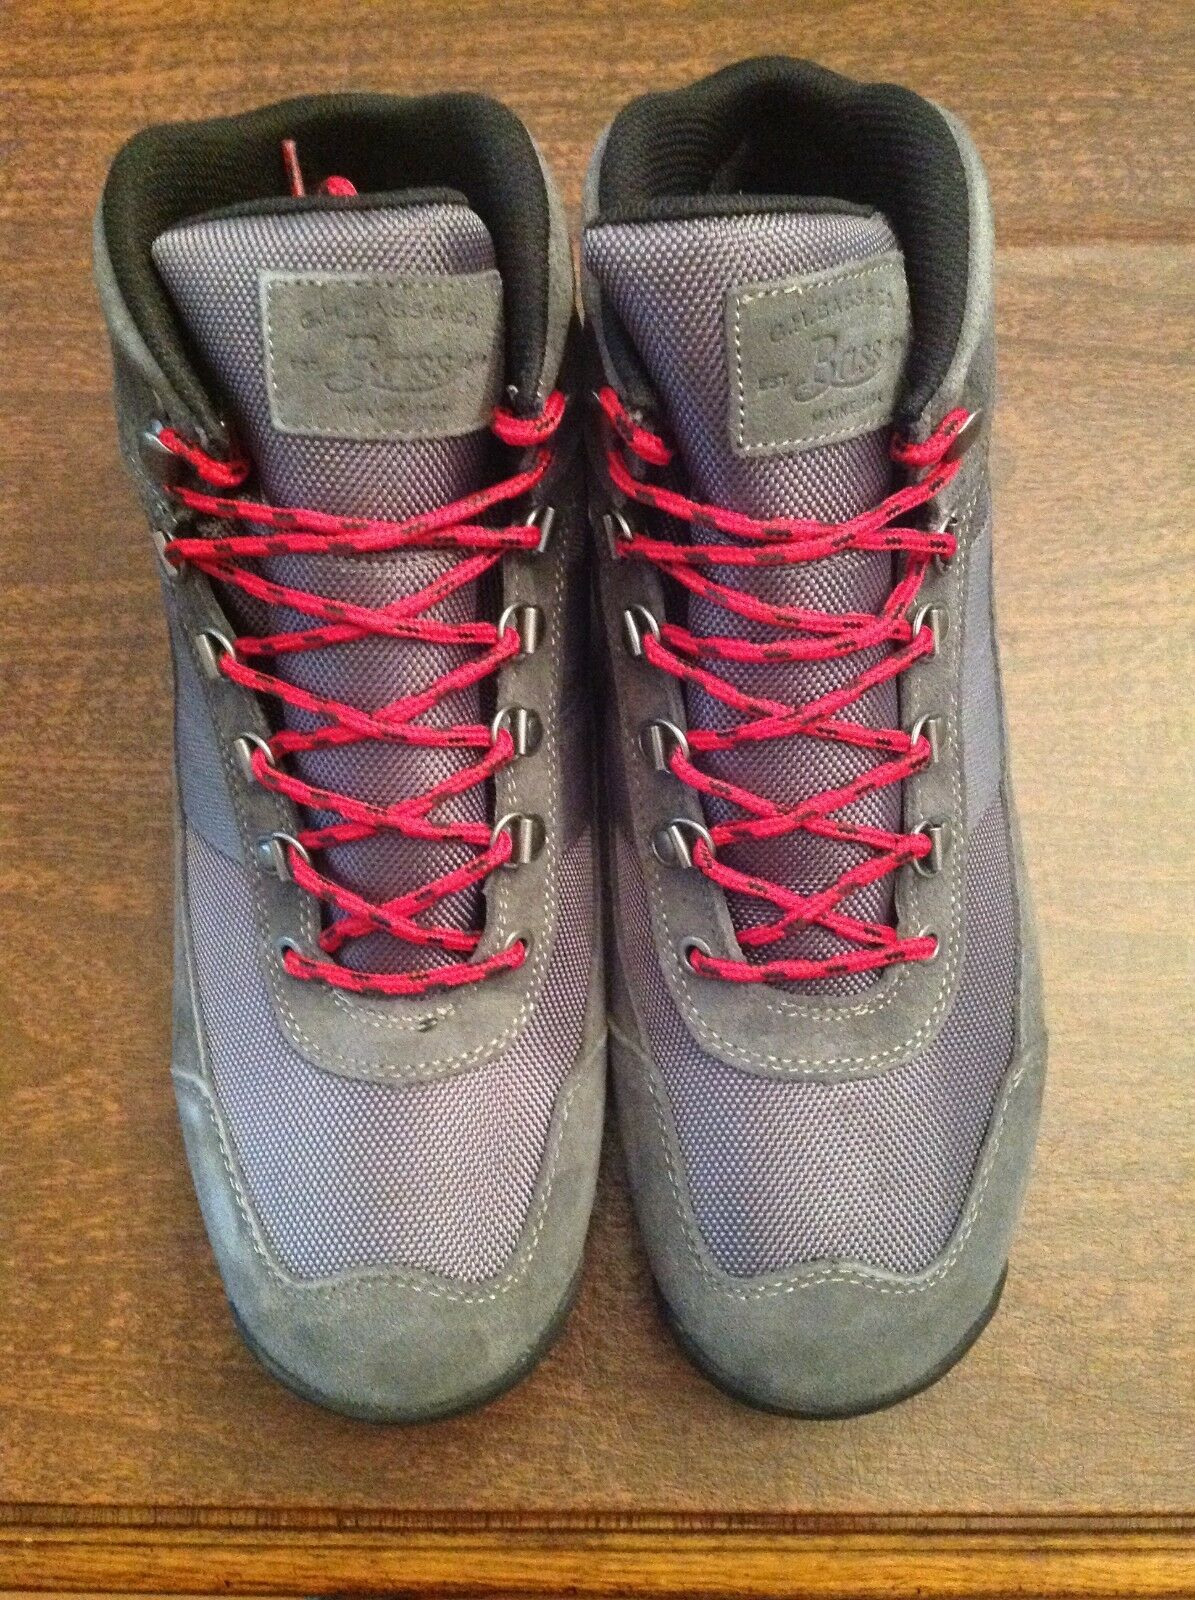 G. H. Bass & Co. Men's Grey Aspen Hikers Boots  Size: 11.5M   New in Box